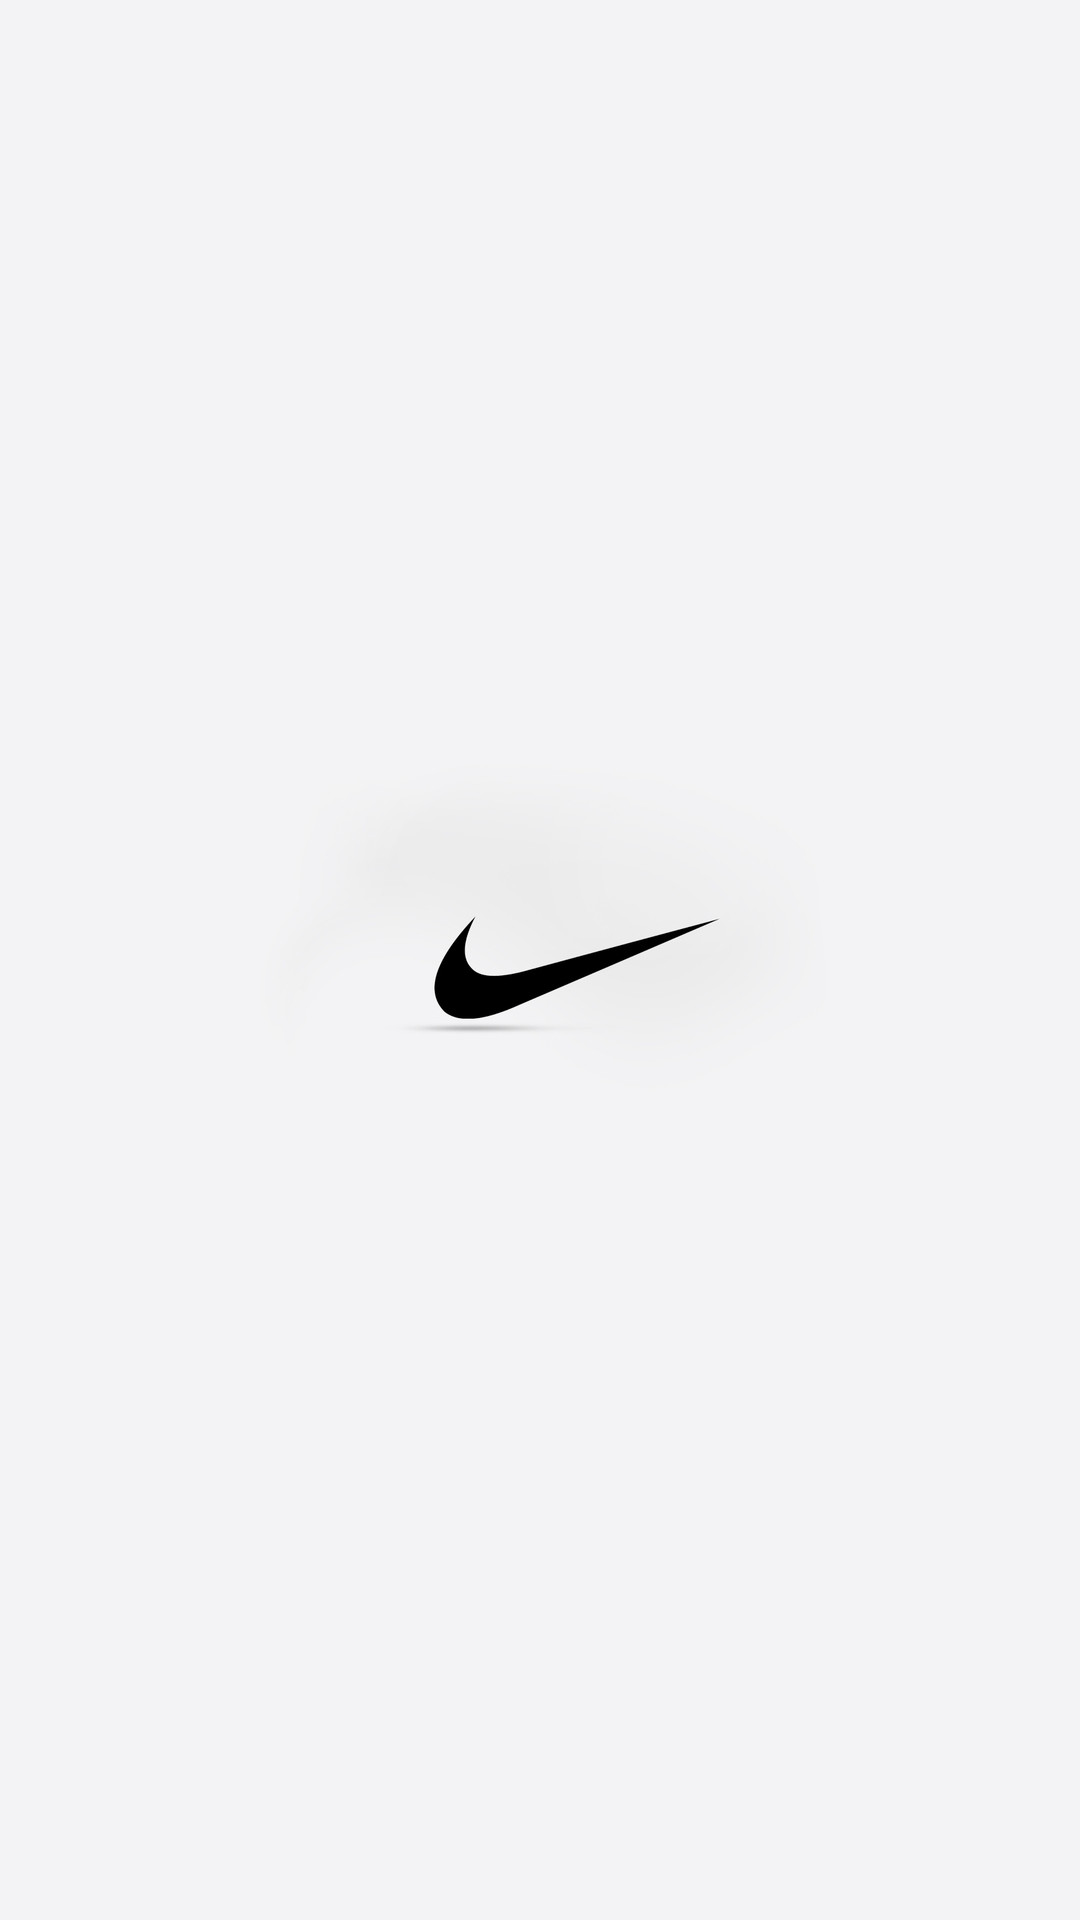 1080x1920 HD Nike Backgrounds for Iphone